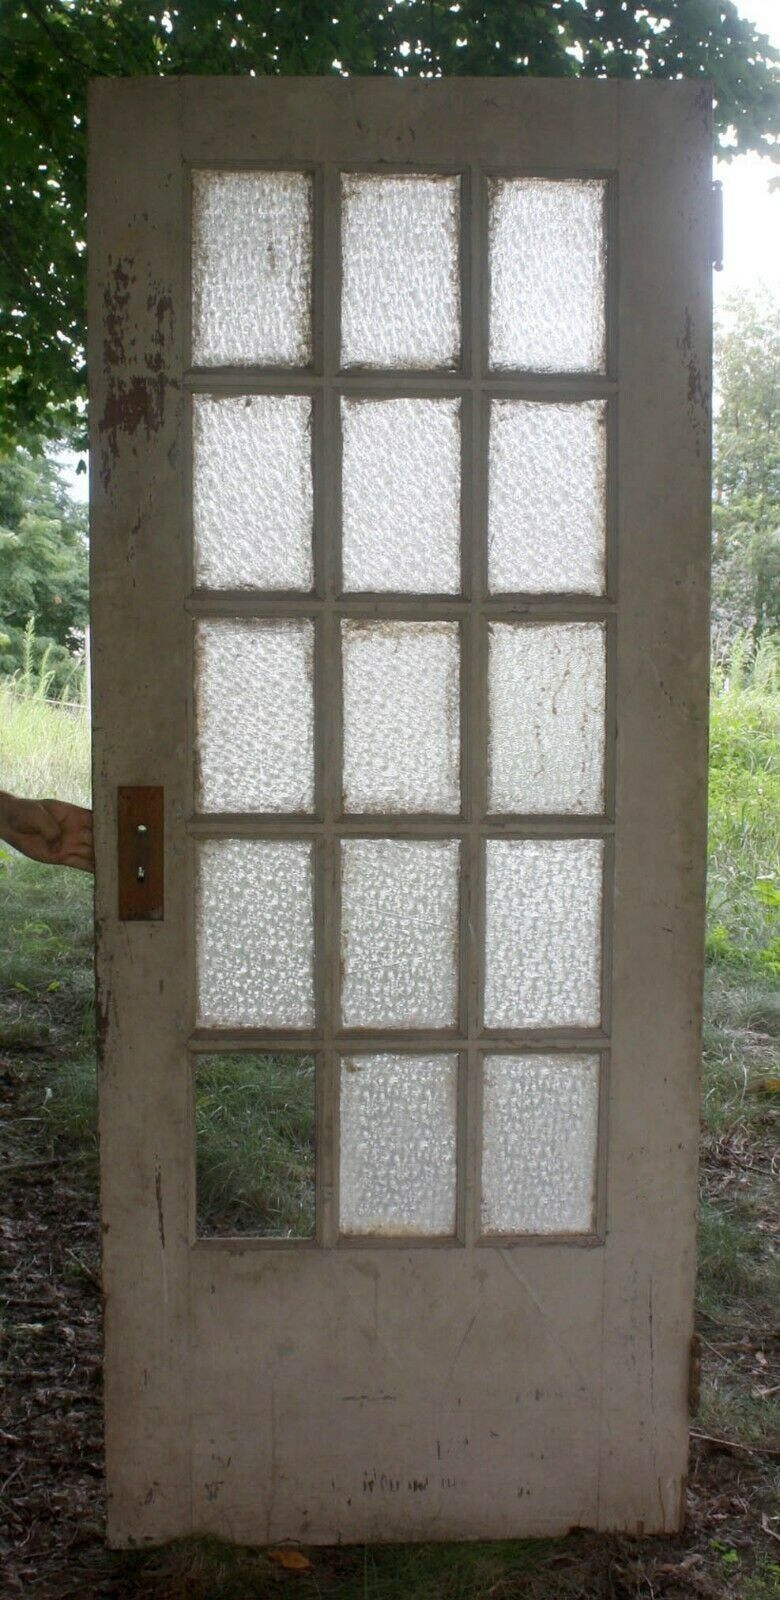 32x78 Antique Vintage Wood Exterior Entry French Door Window